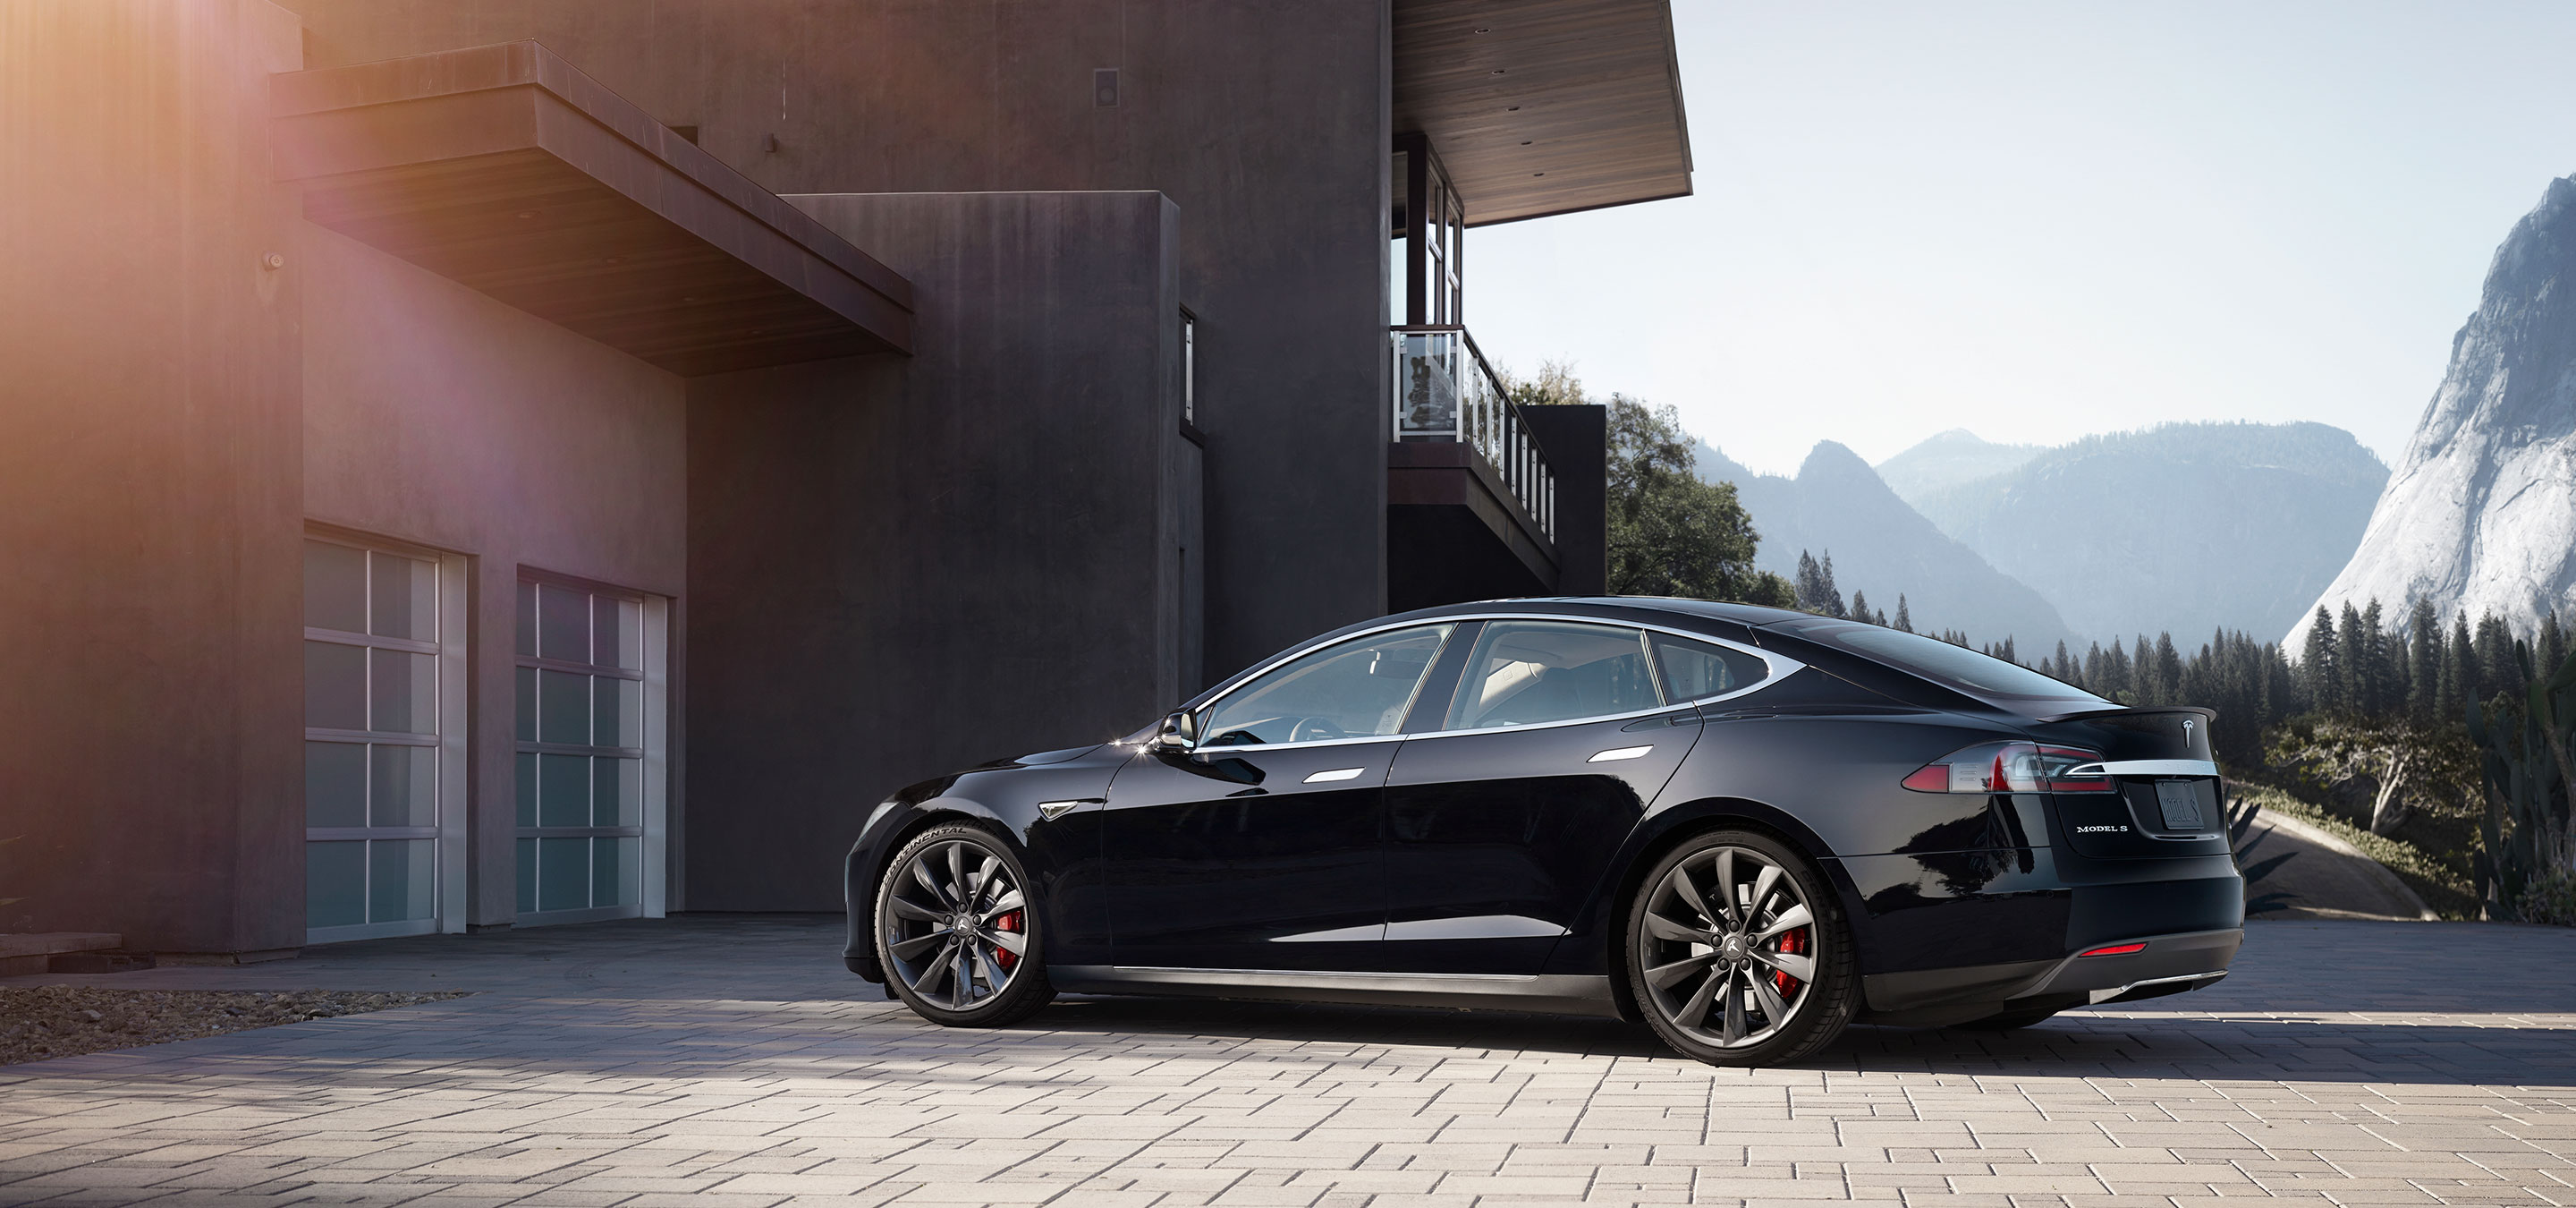 7 Reasons Why Tesla Sells Its Own Cars Fortune